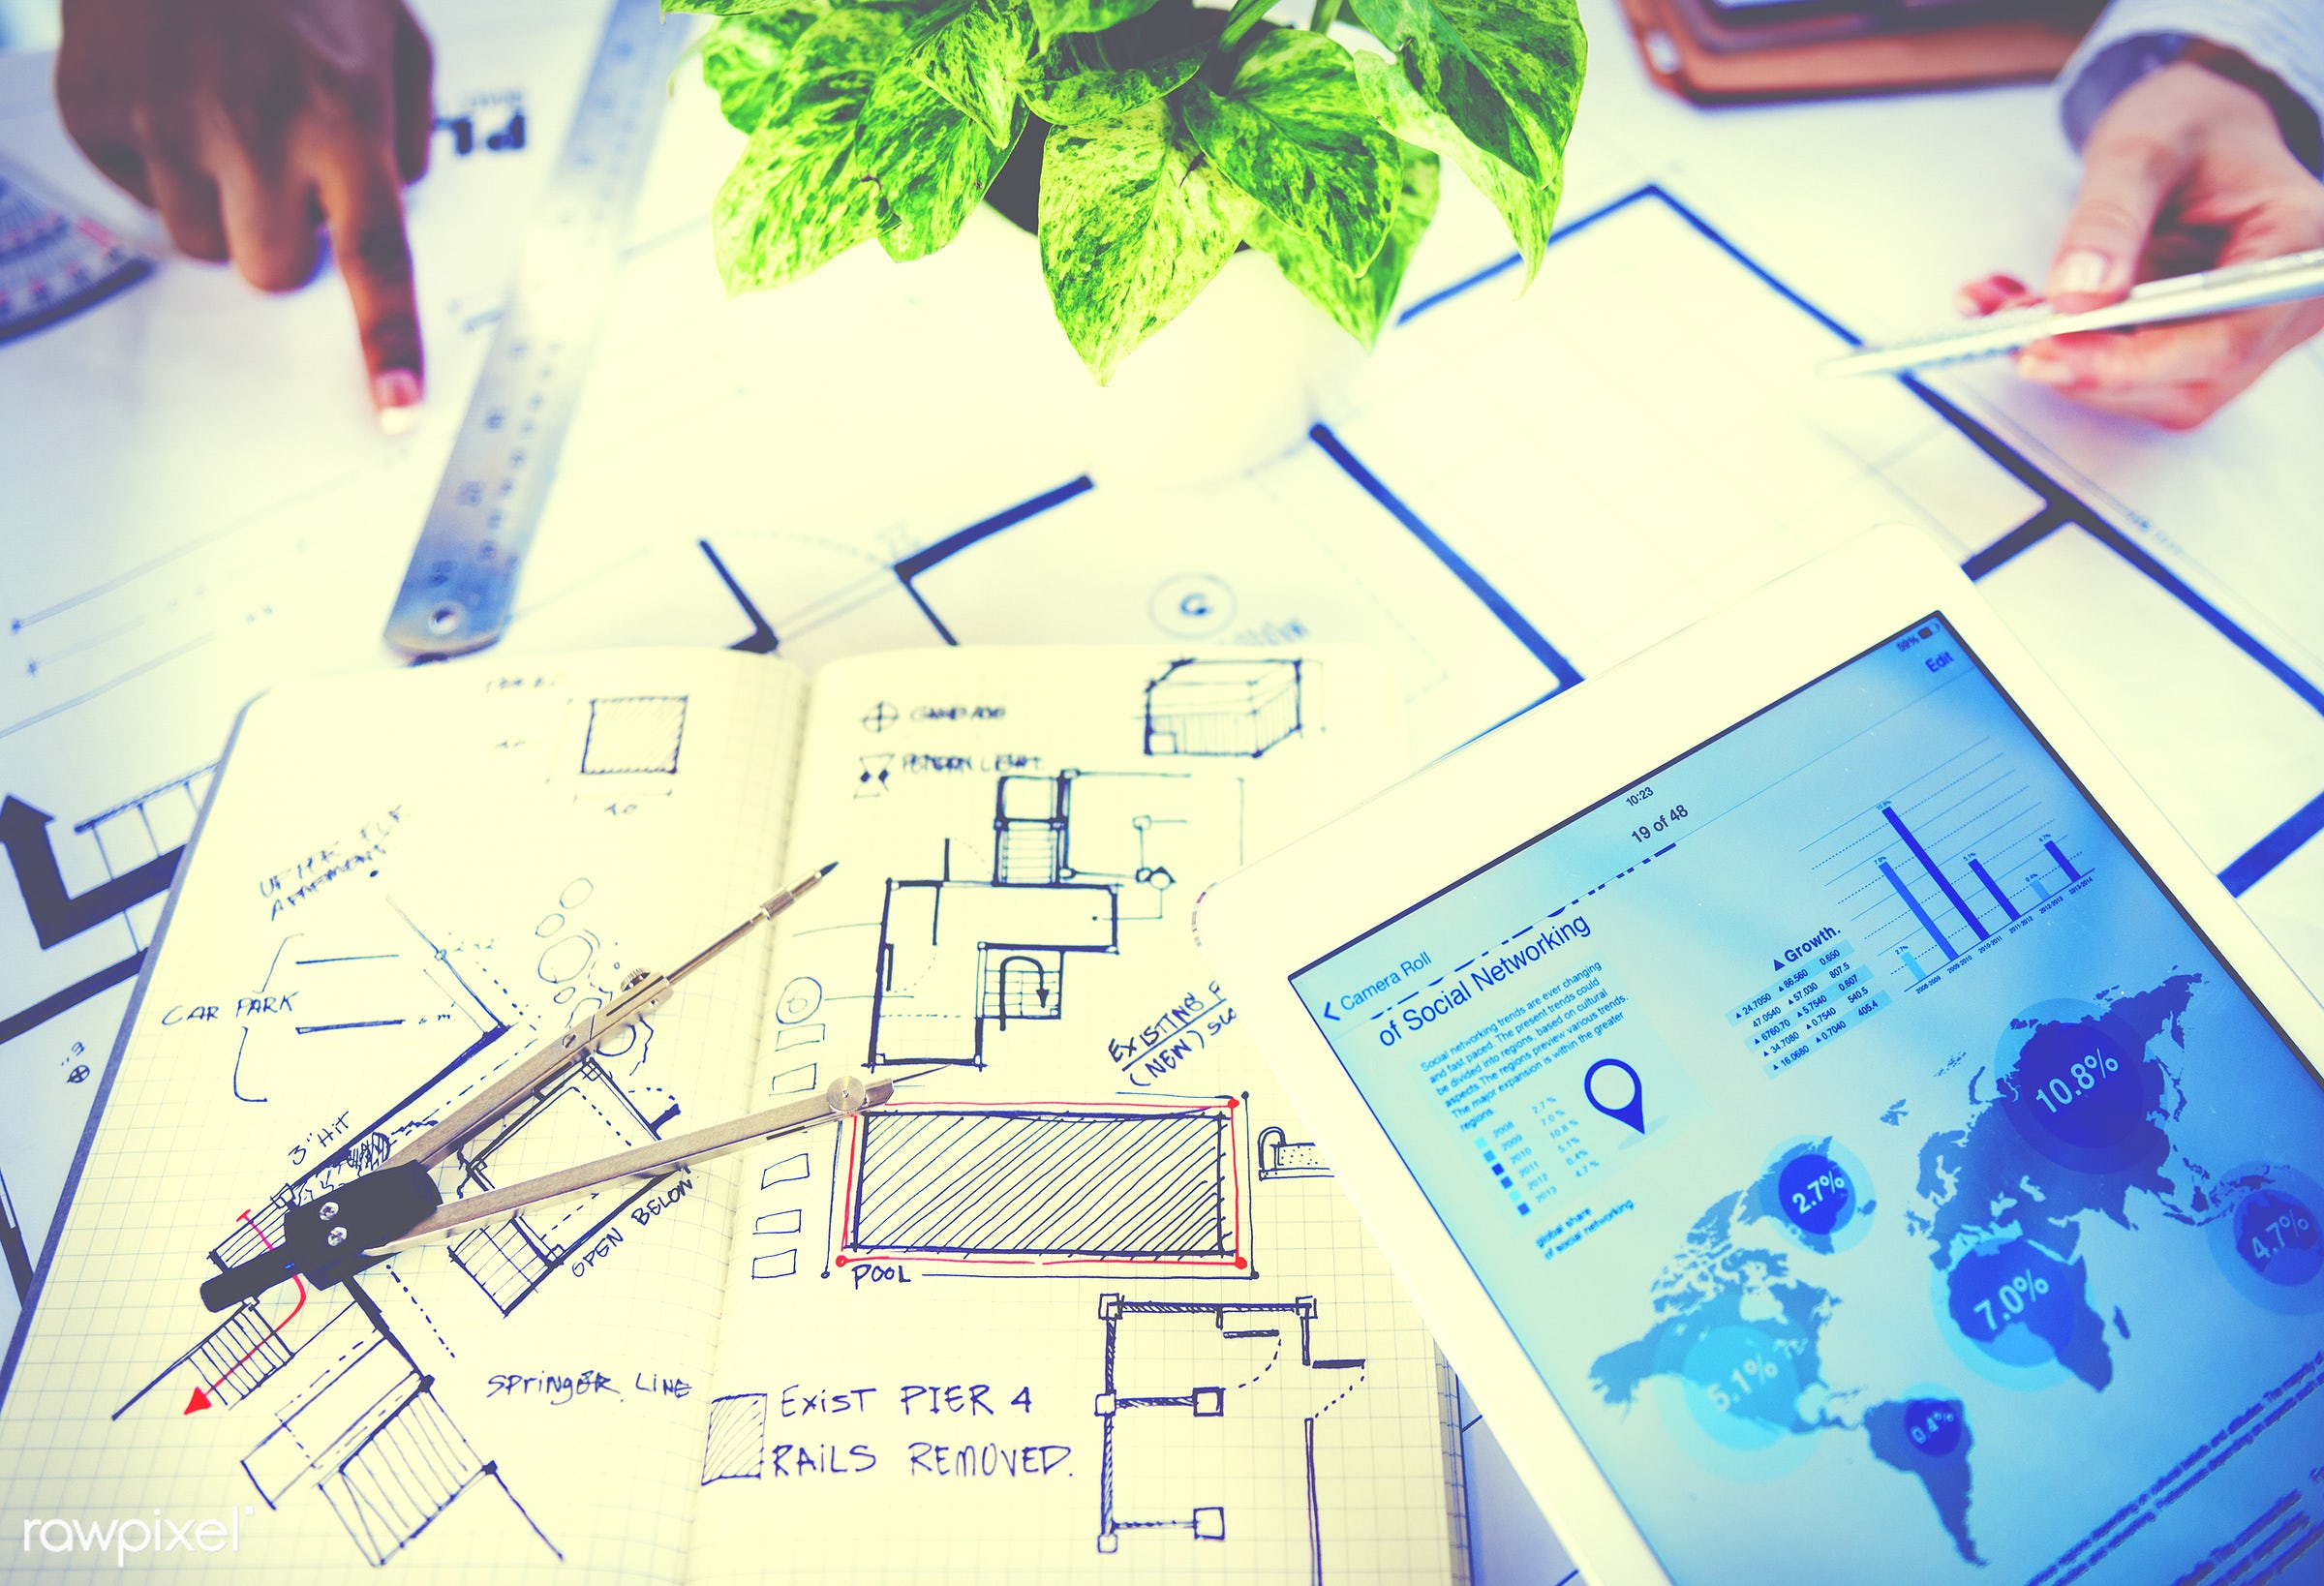 adhesive note, aerial view, architect, architecture, blue print, business, connection, construction, constructive, data,...